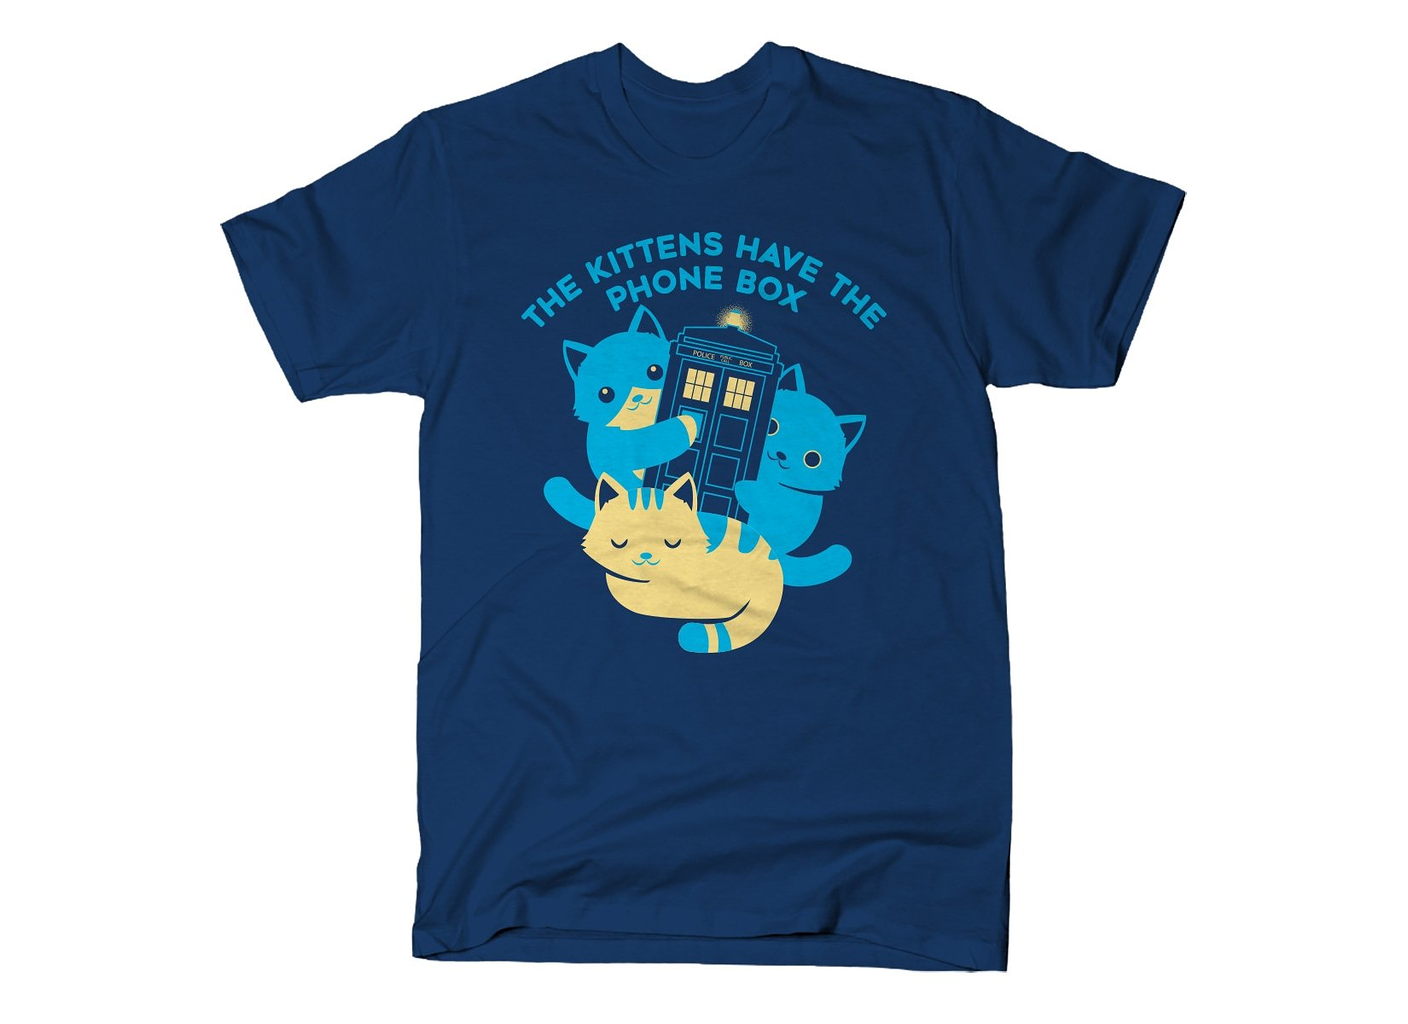 SnorgTees: The Kittens Have The Phone Box